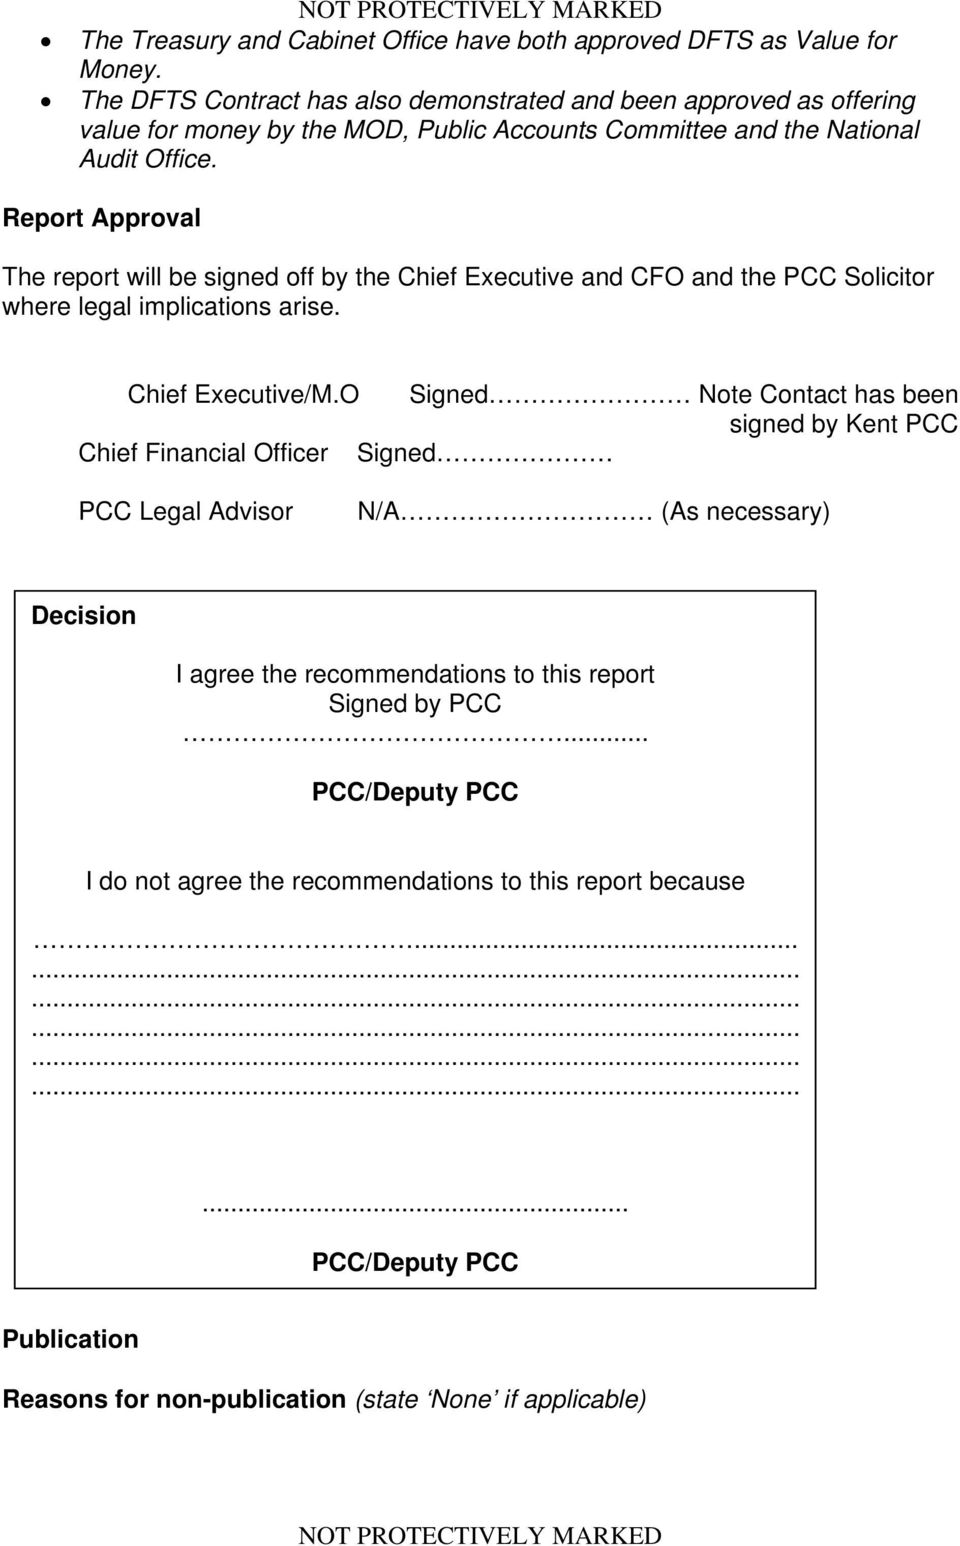 Report Approval The report will be signed off by the Chief Executive and CFO and the PCC Solicitor where legal implications arise. Chief Executive/M.